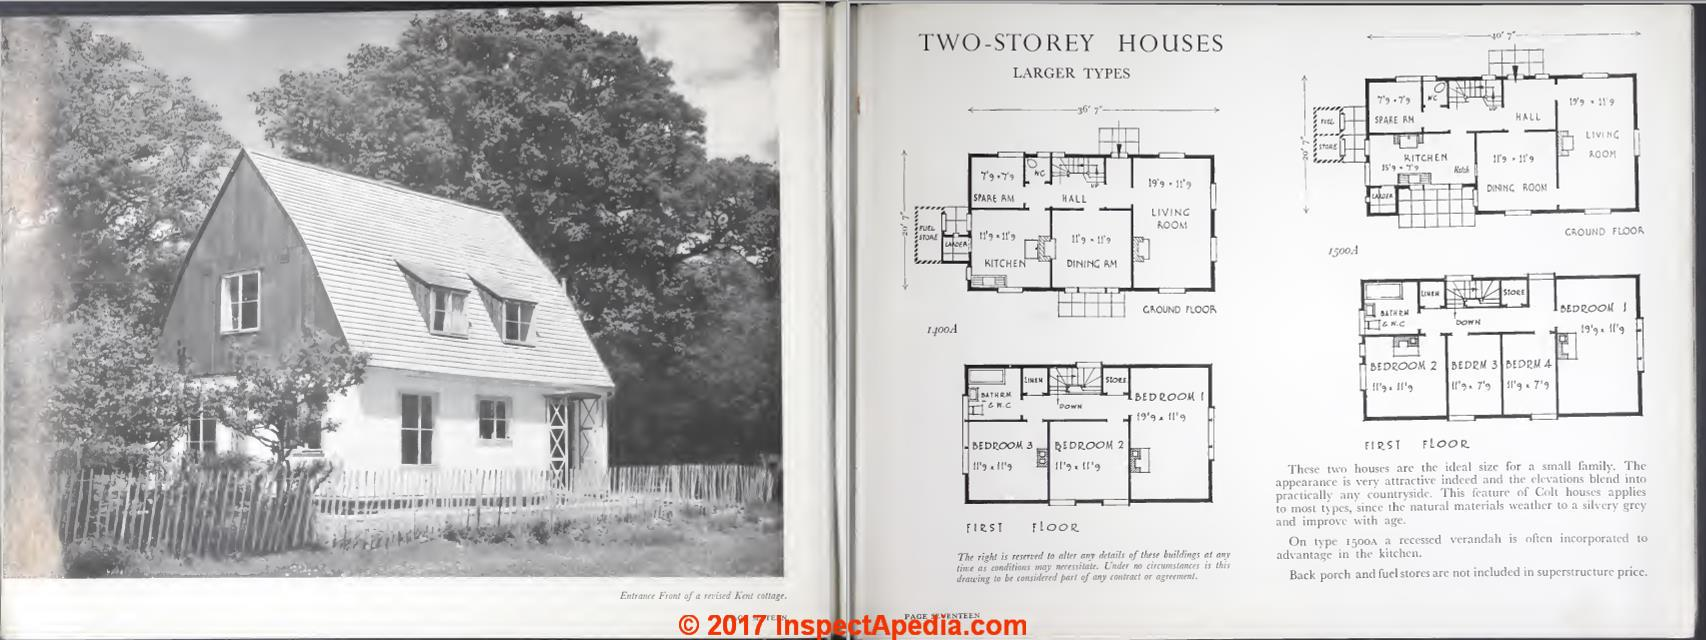 Guide to Manufacturers of Kit Houses - How to identify an ... on 1920 style home plans, 1950 home design, retro house plans, minimal traditional house plans, 1950 home interiors, 1950 style home plans,